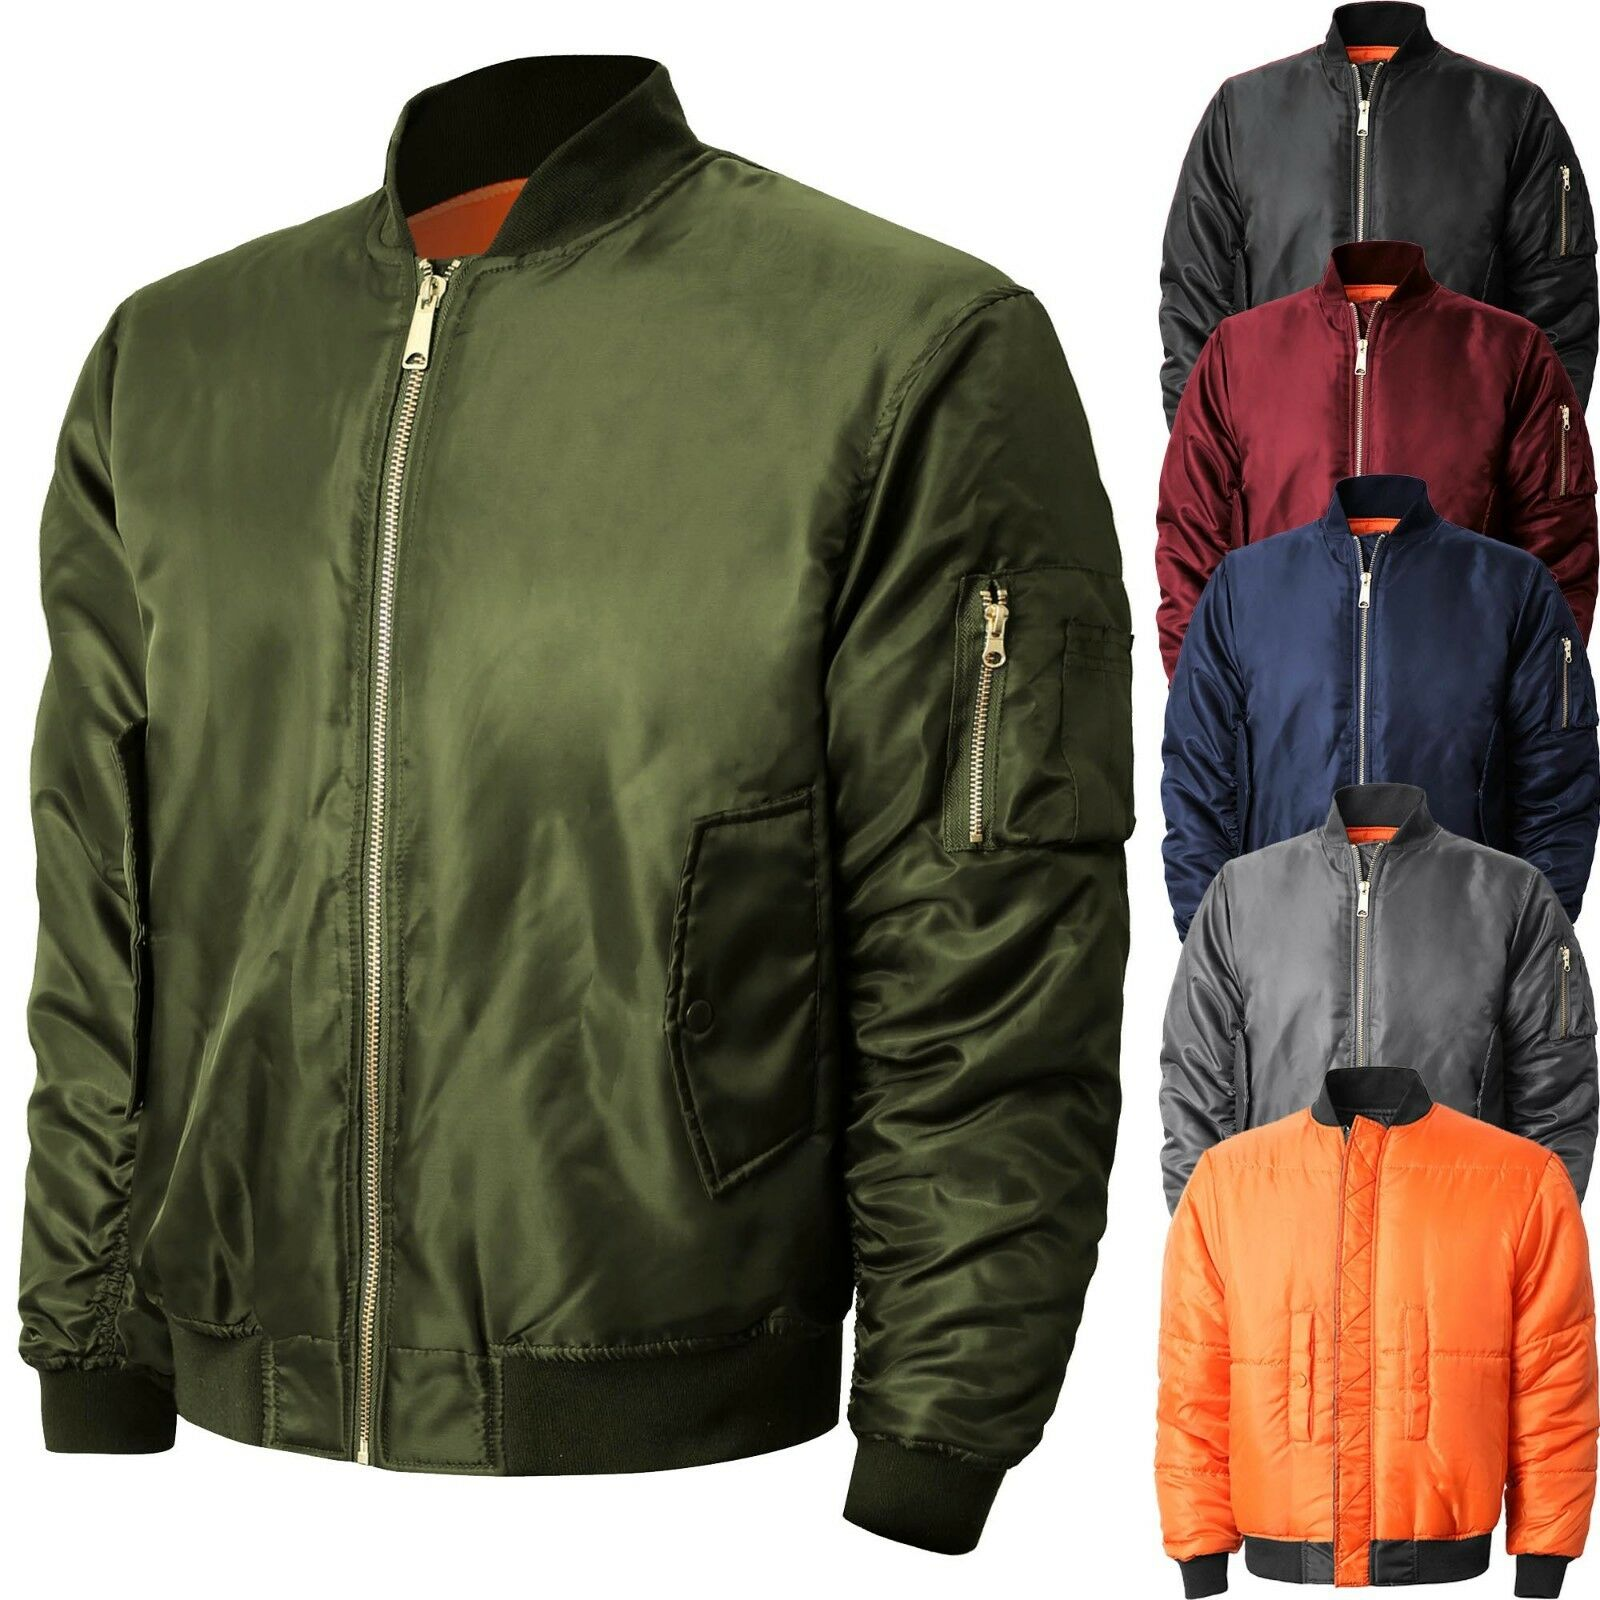 Mens Bomber Jacket Winter Flight Military Air Force MA-1 Tac